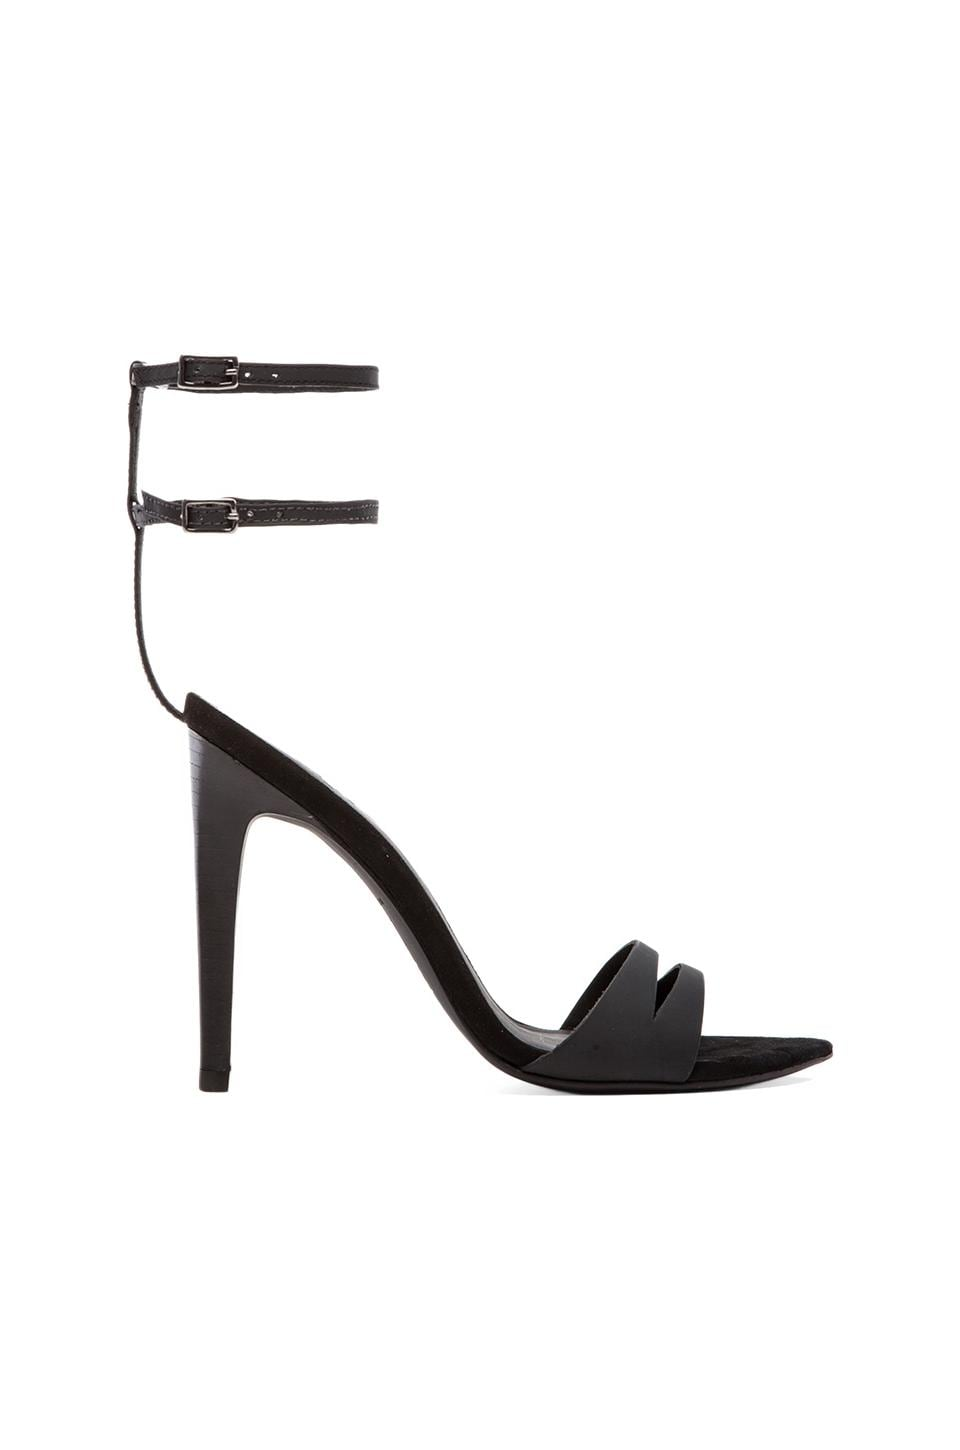 Tibi Mia Heel in Black